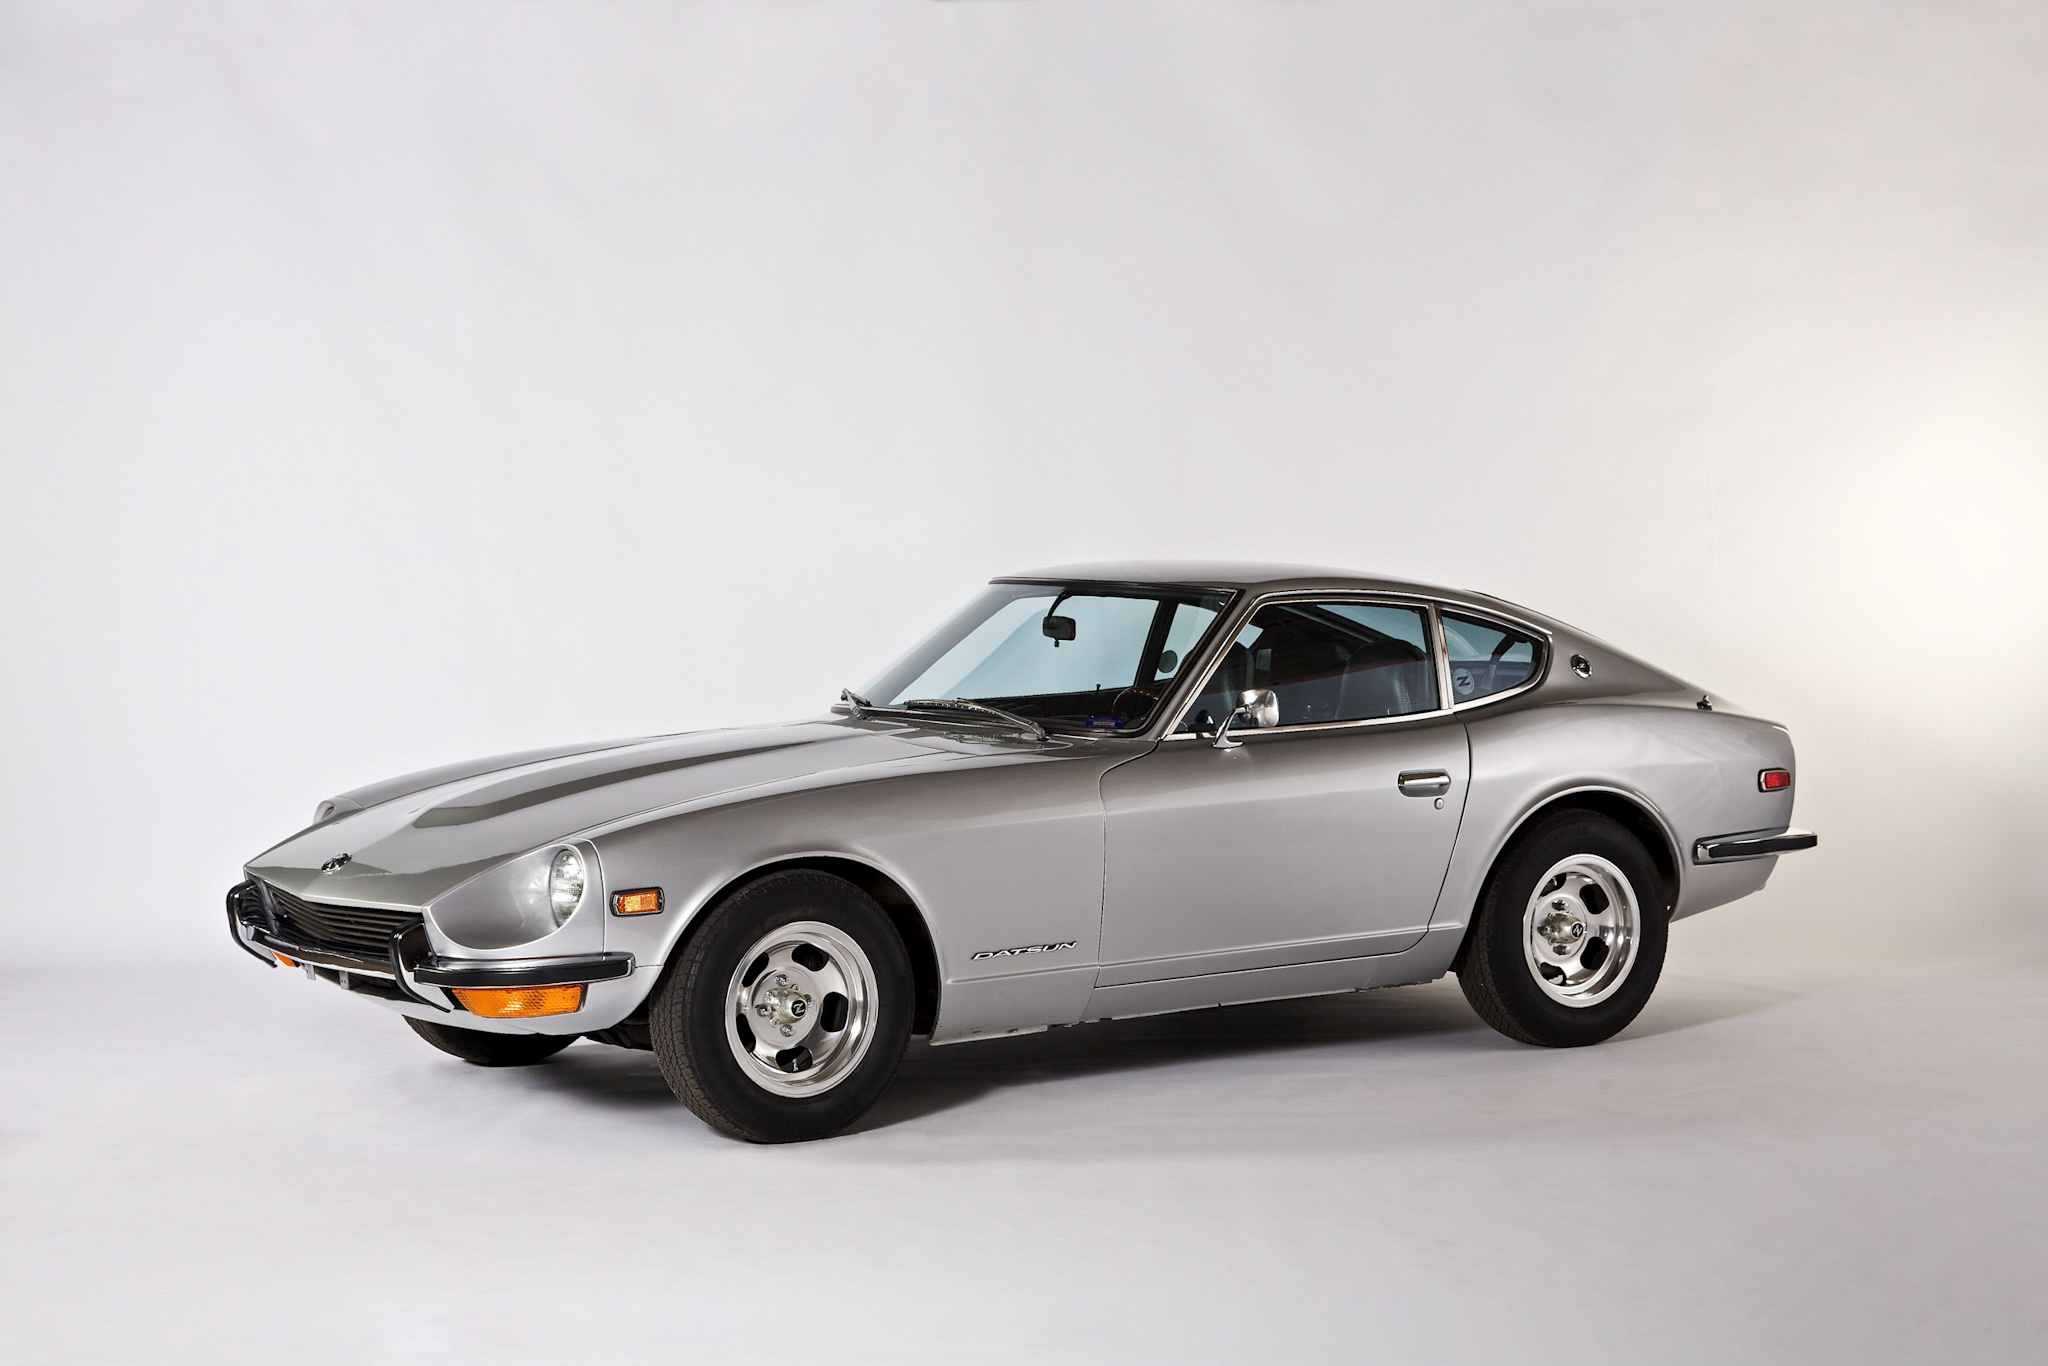 Factory restored 240-Z from the Nineties-era Vintage-Z program